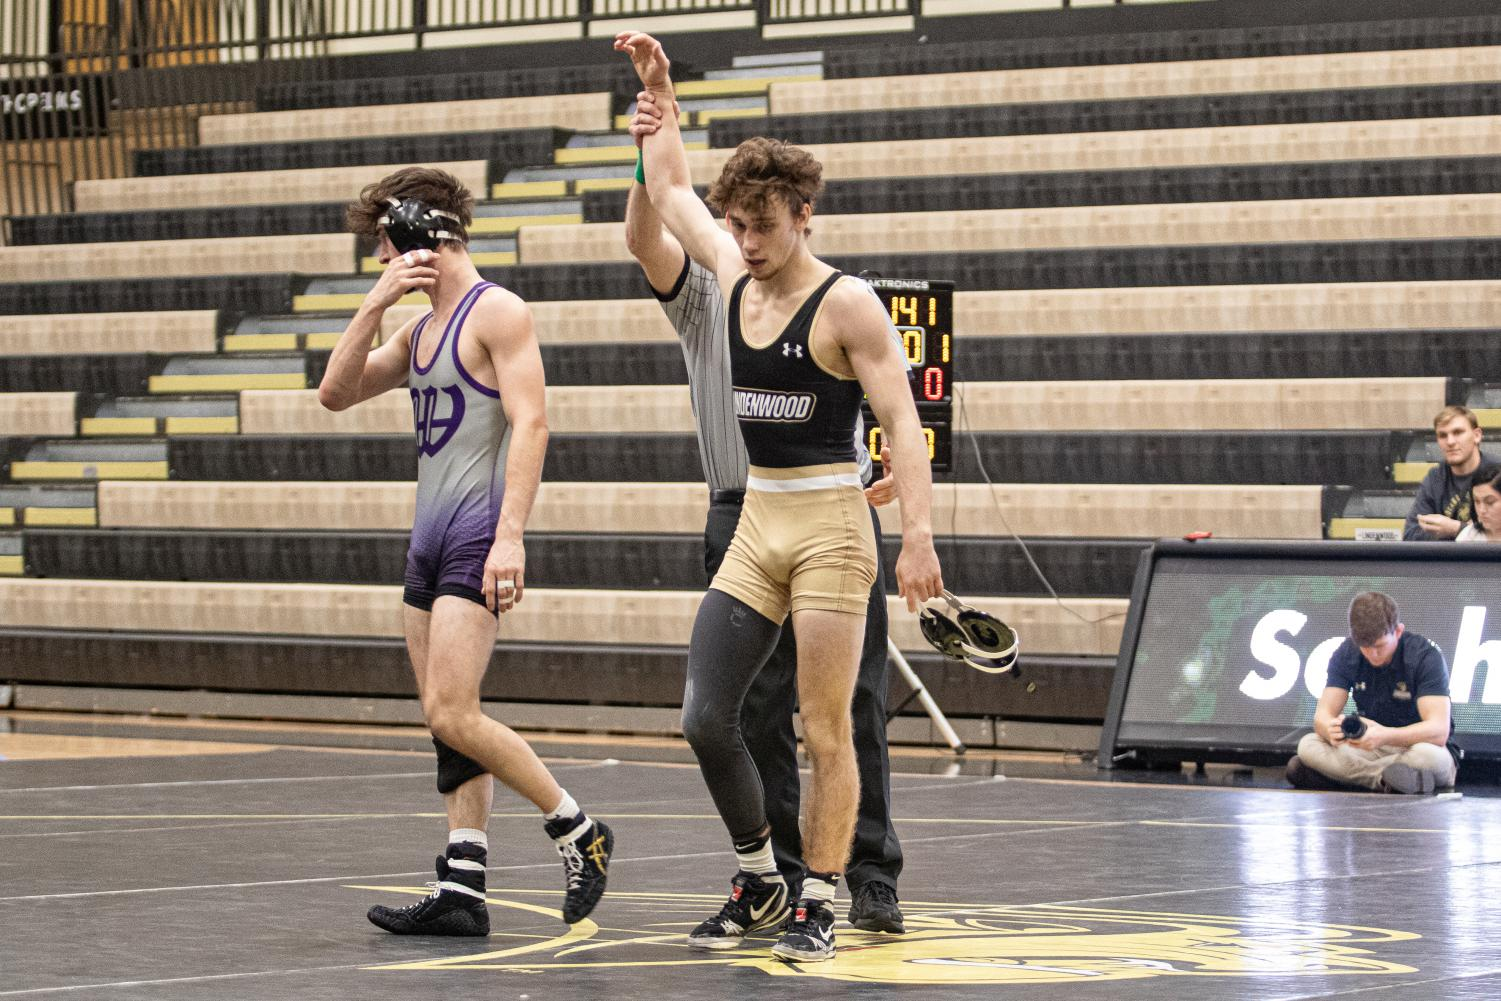 Tanner Hitchcock (right) won the match against a Panthers wrestler from Kentucky on Feb. 11 at Hyland Arena. The Lions defeated the Panthers 44-0